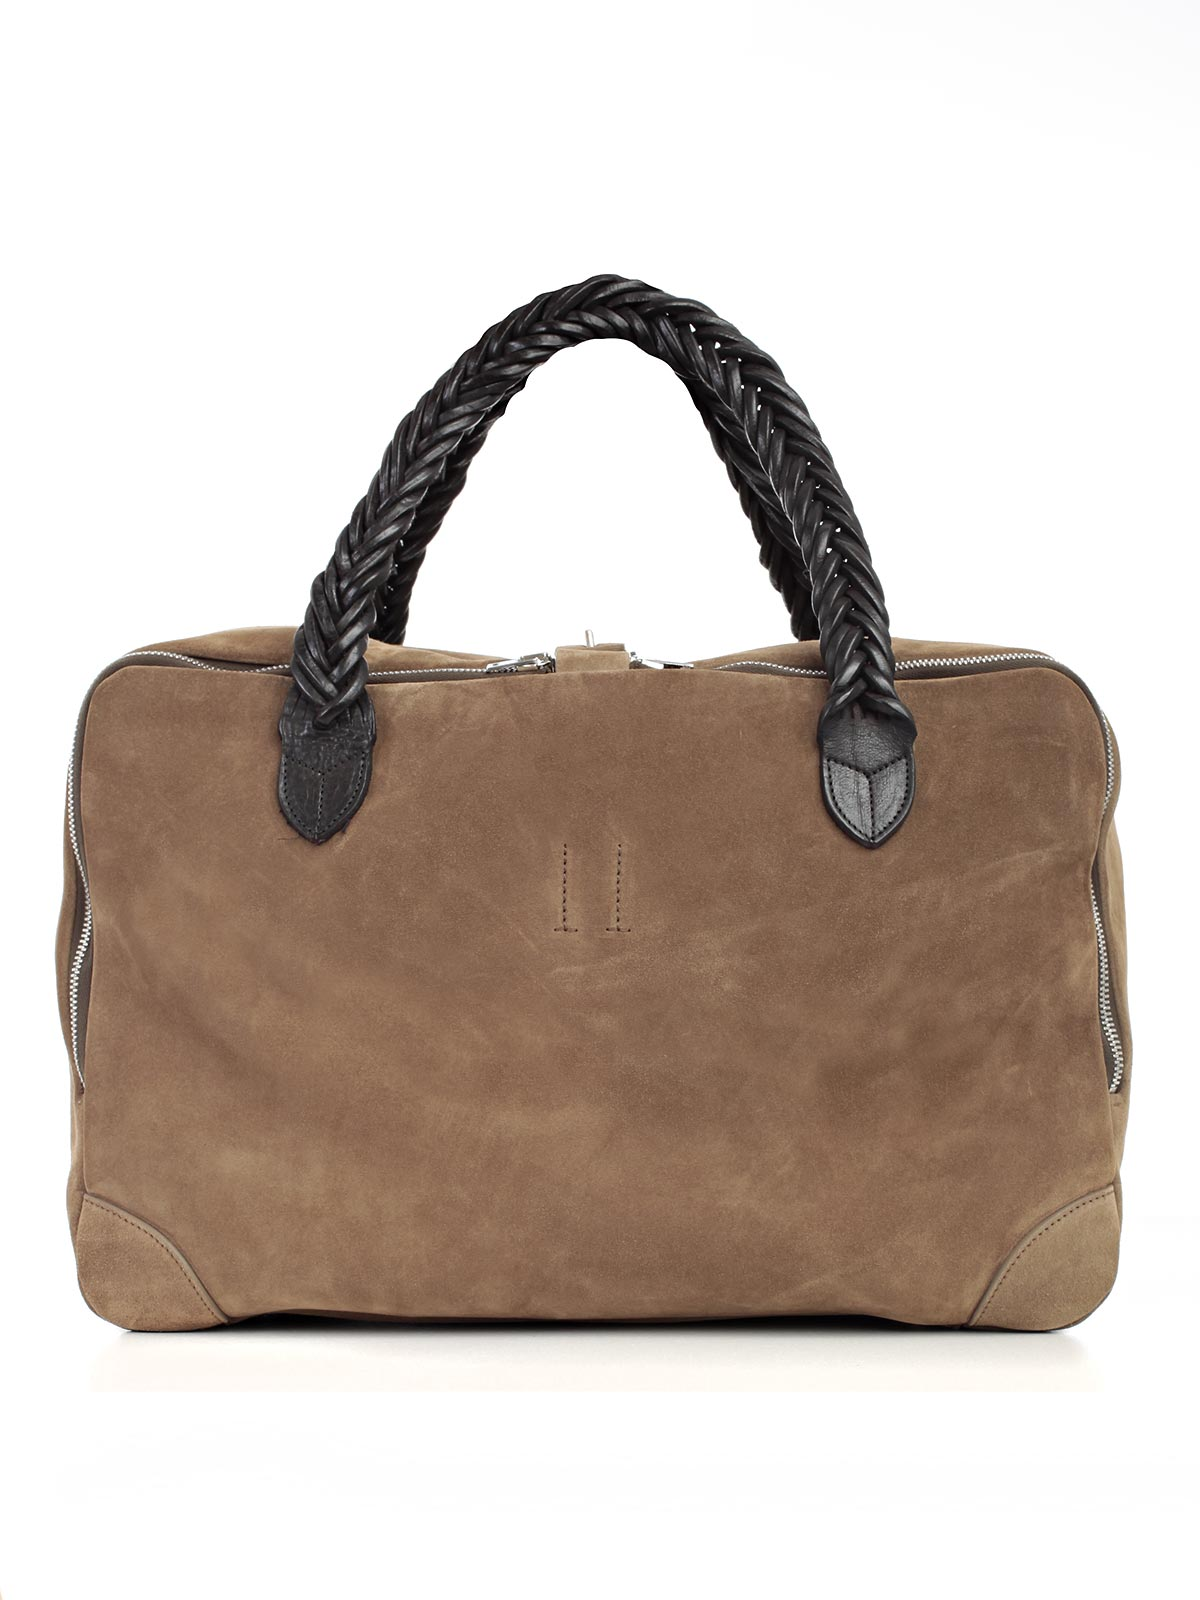 Picture of GOLDEN GOOSE DELUXE BRAND BAG BORSA EQUIPAGE M/M PICCOLA